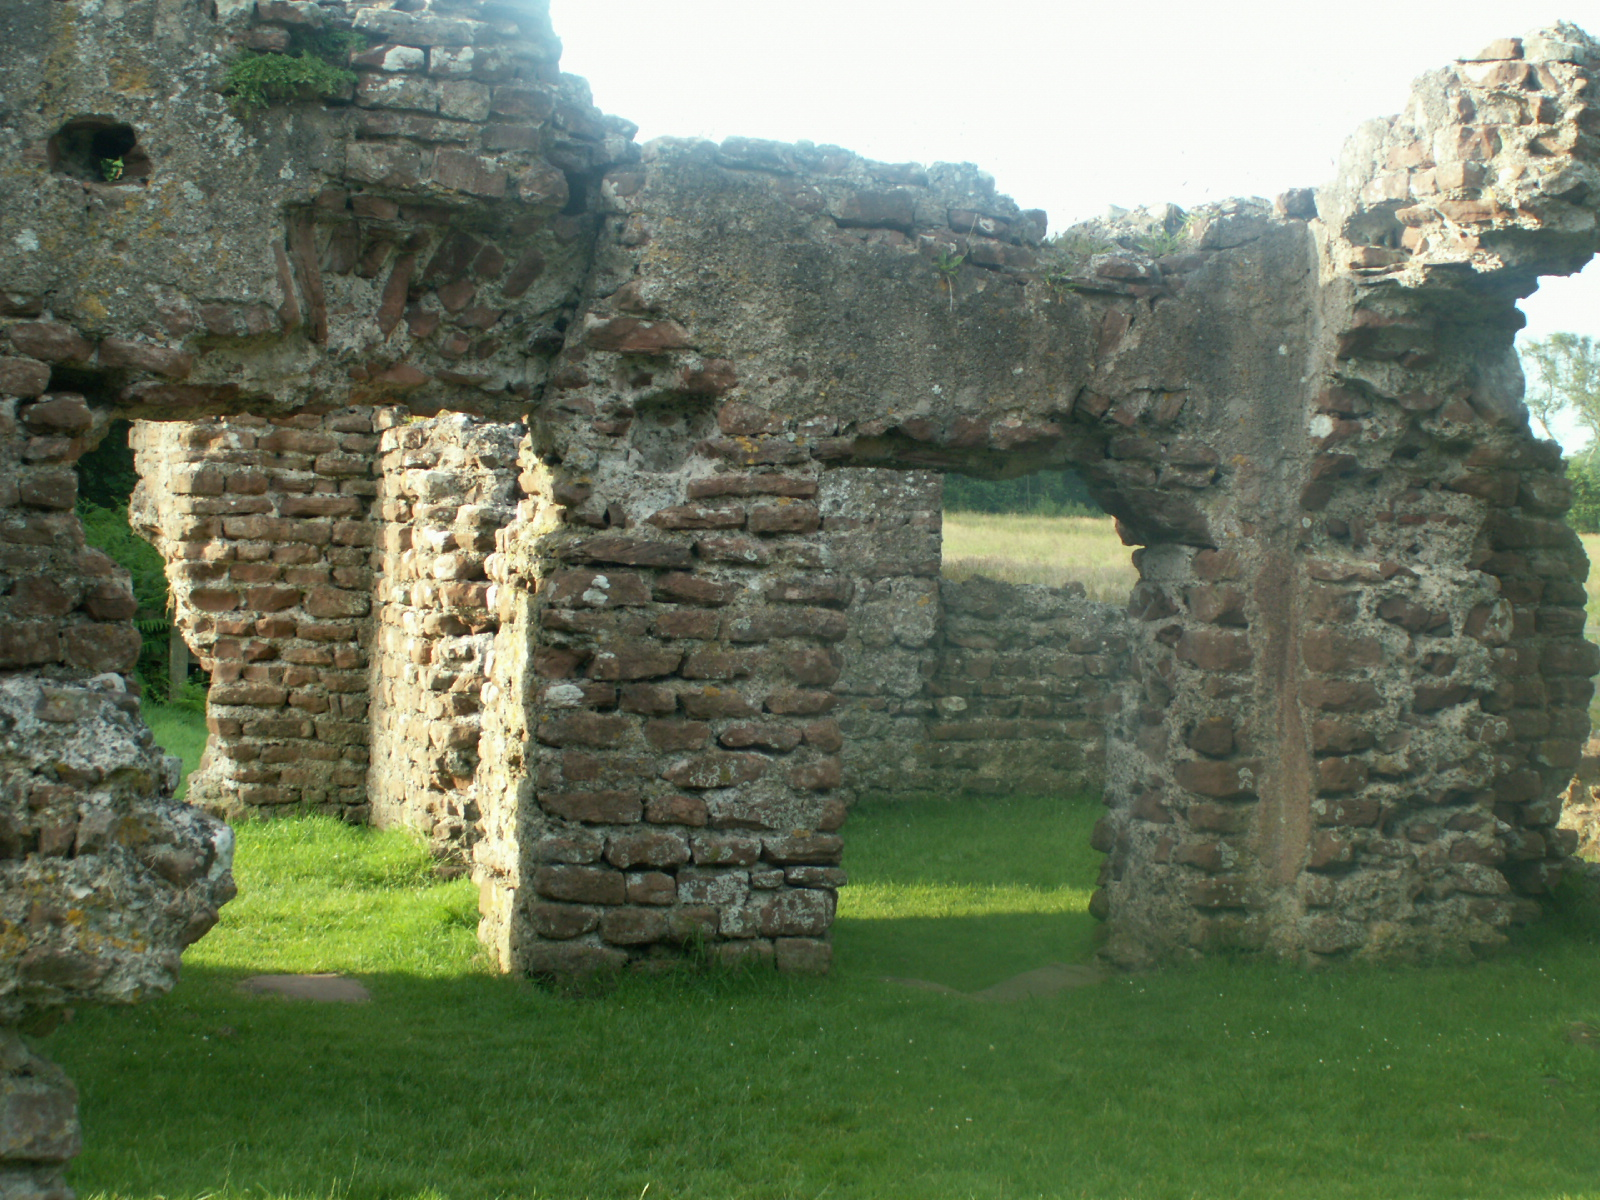 ©2020 Face of Grace Project Roman bathhouse ruins, Ravenglass, England